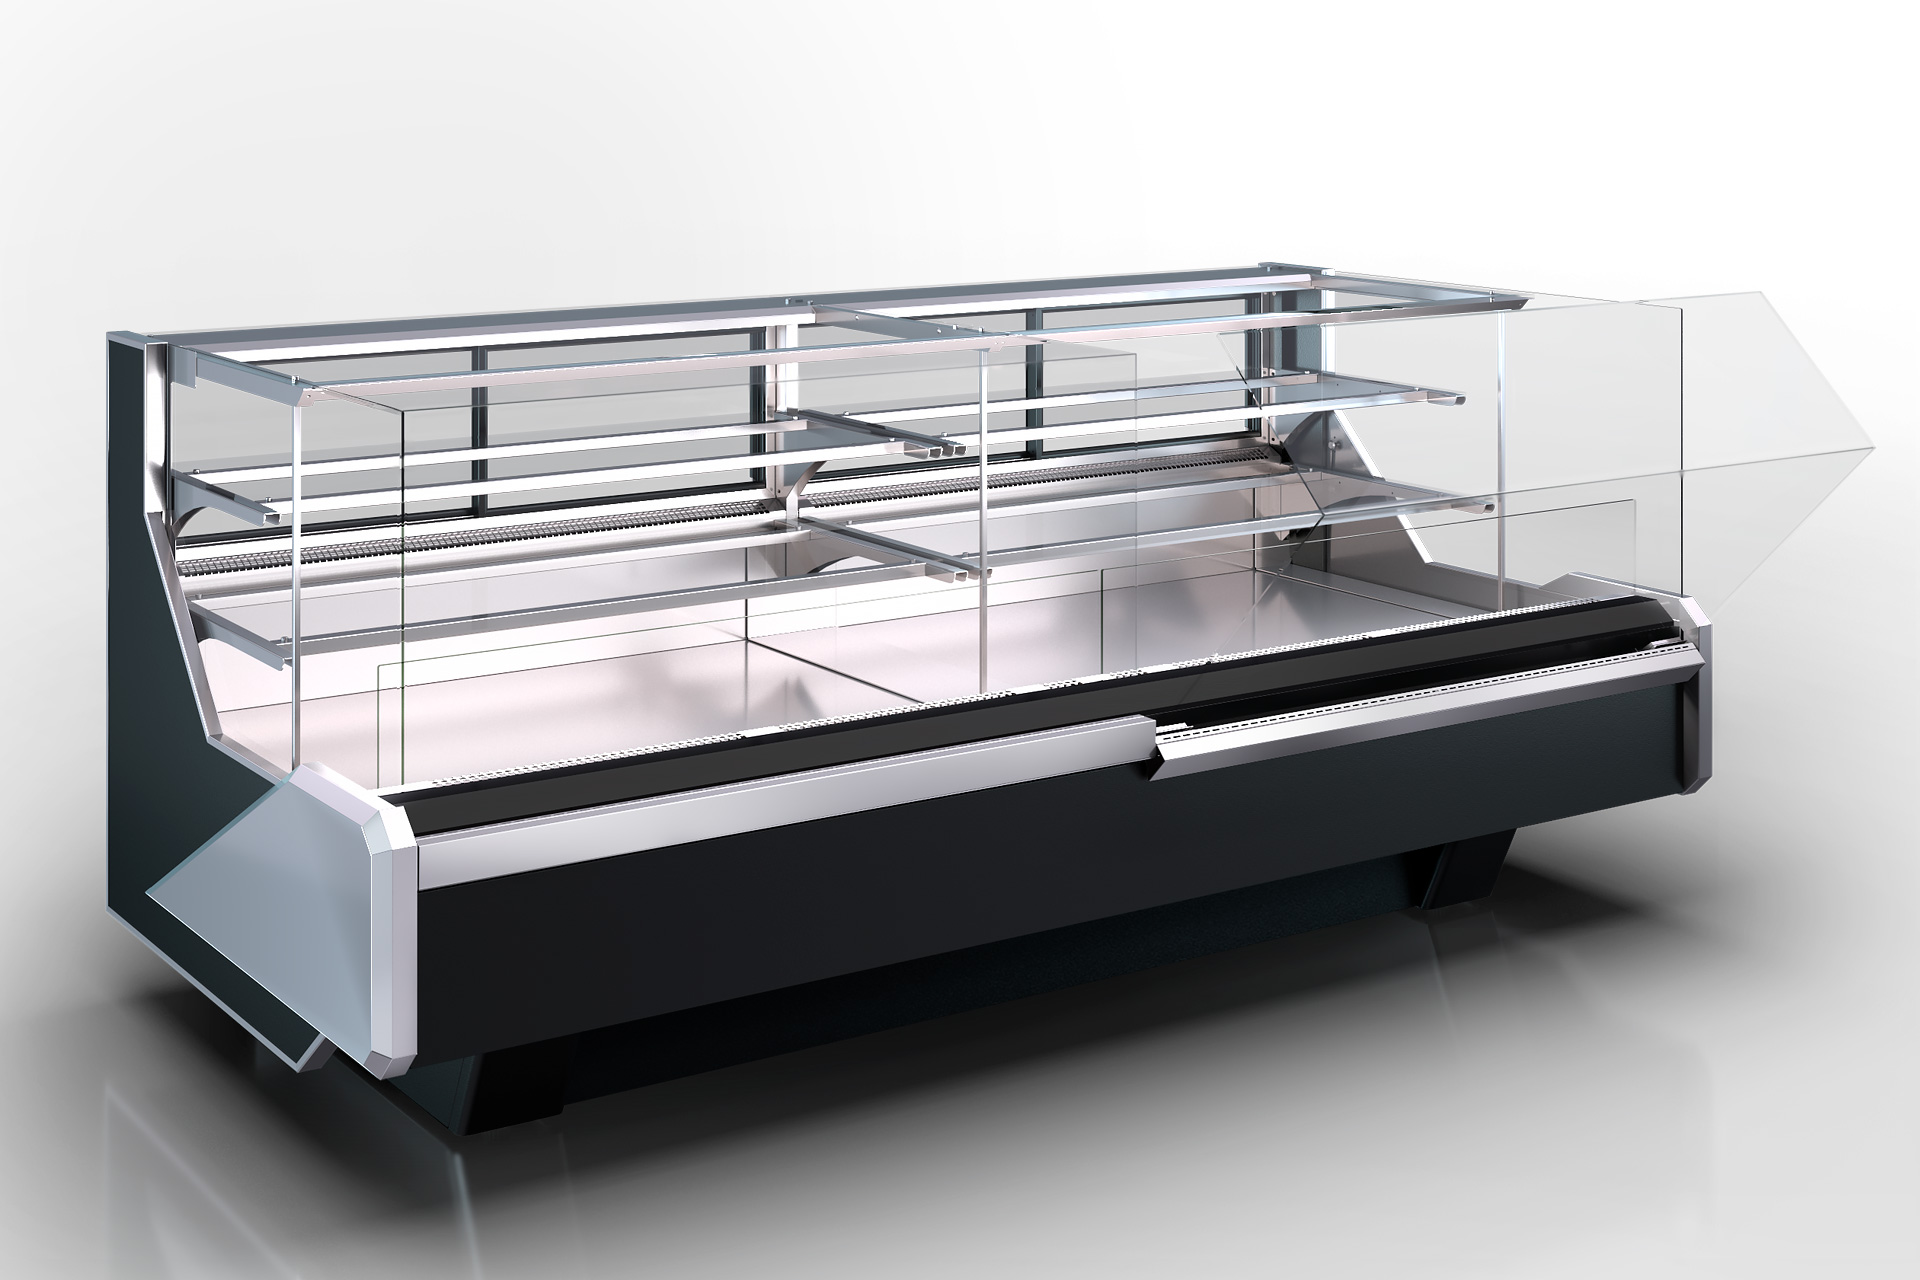 Refrigerated counters Missouri enigma MC 122 patisserie OS 115-DLM (option)